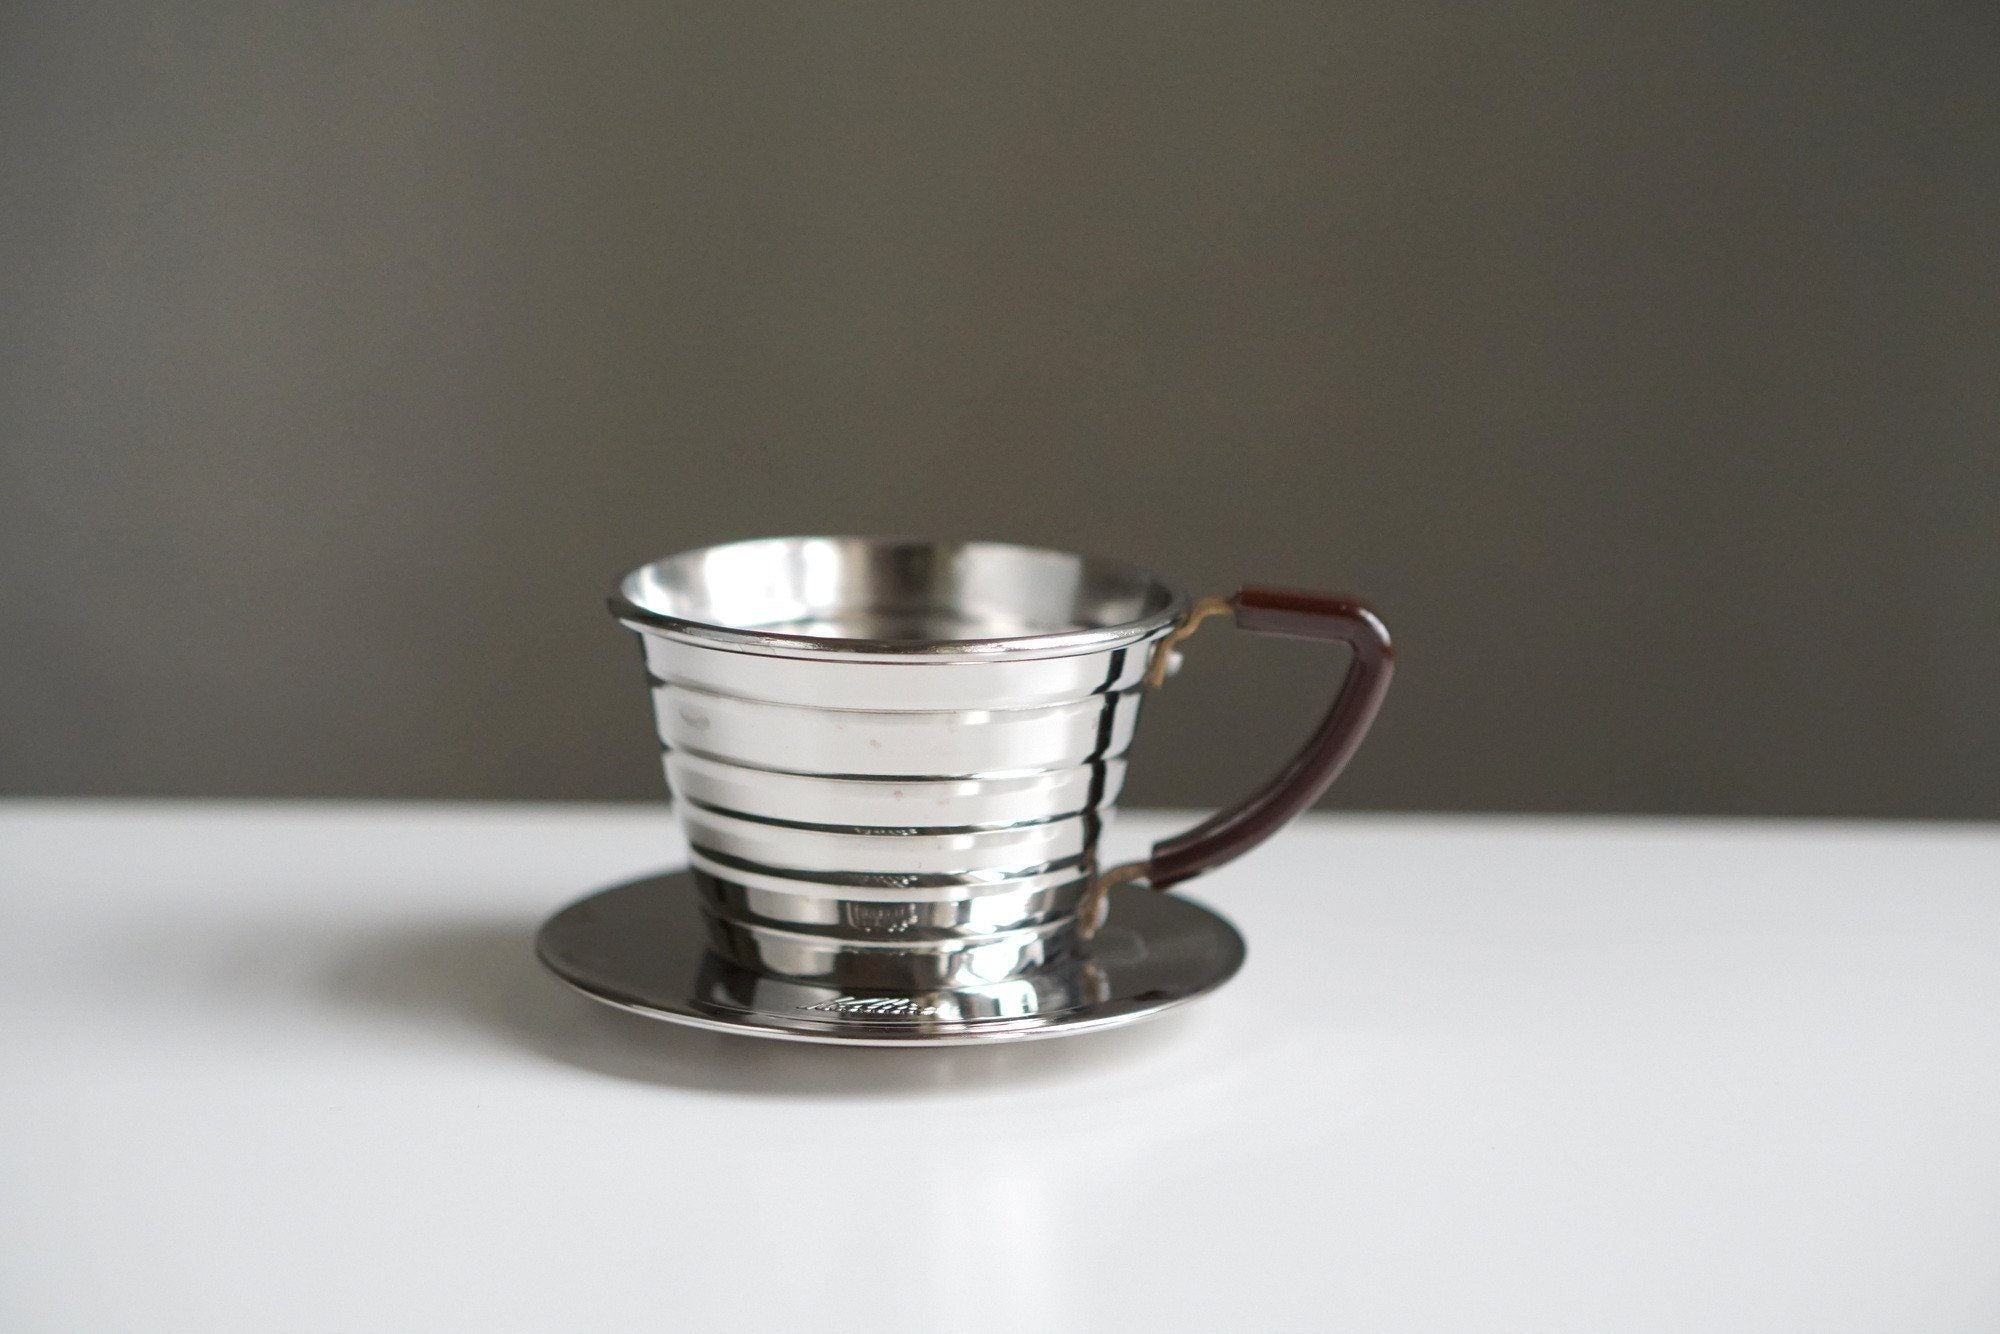 Kalita Wave #155 Stainless Steel Dripper Dripper Kalita #155 Kalita Stainless Steel Dripper